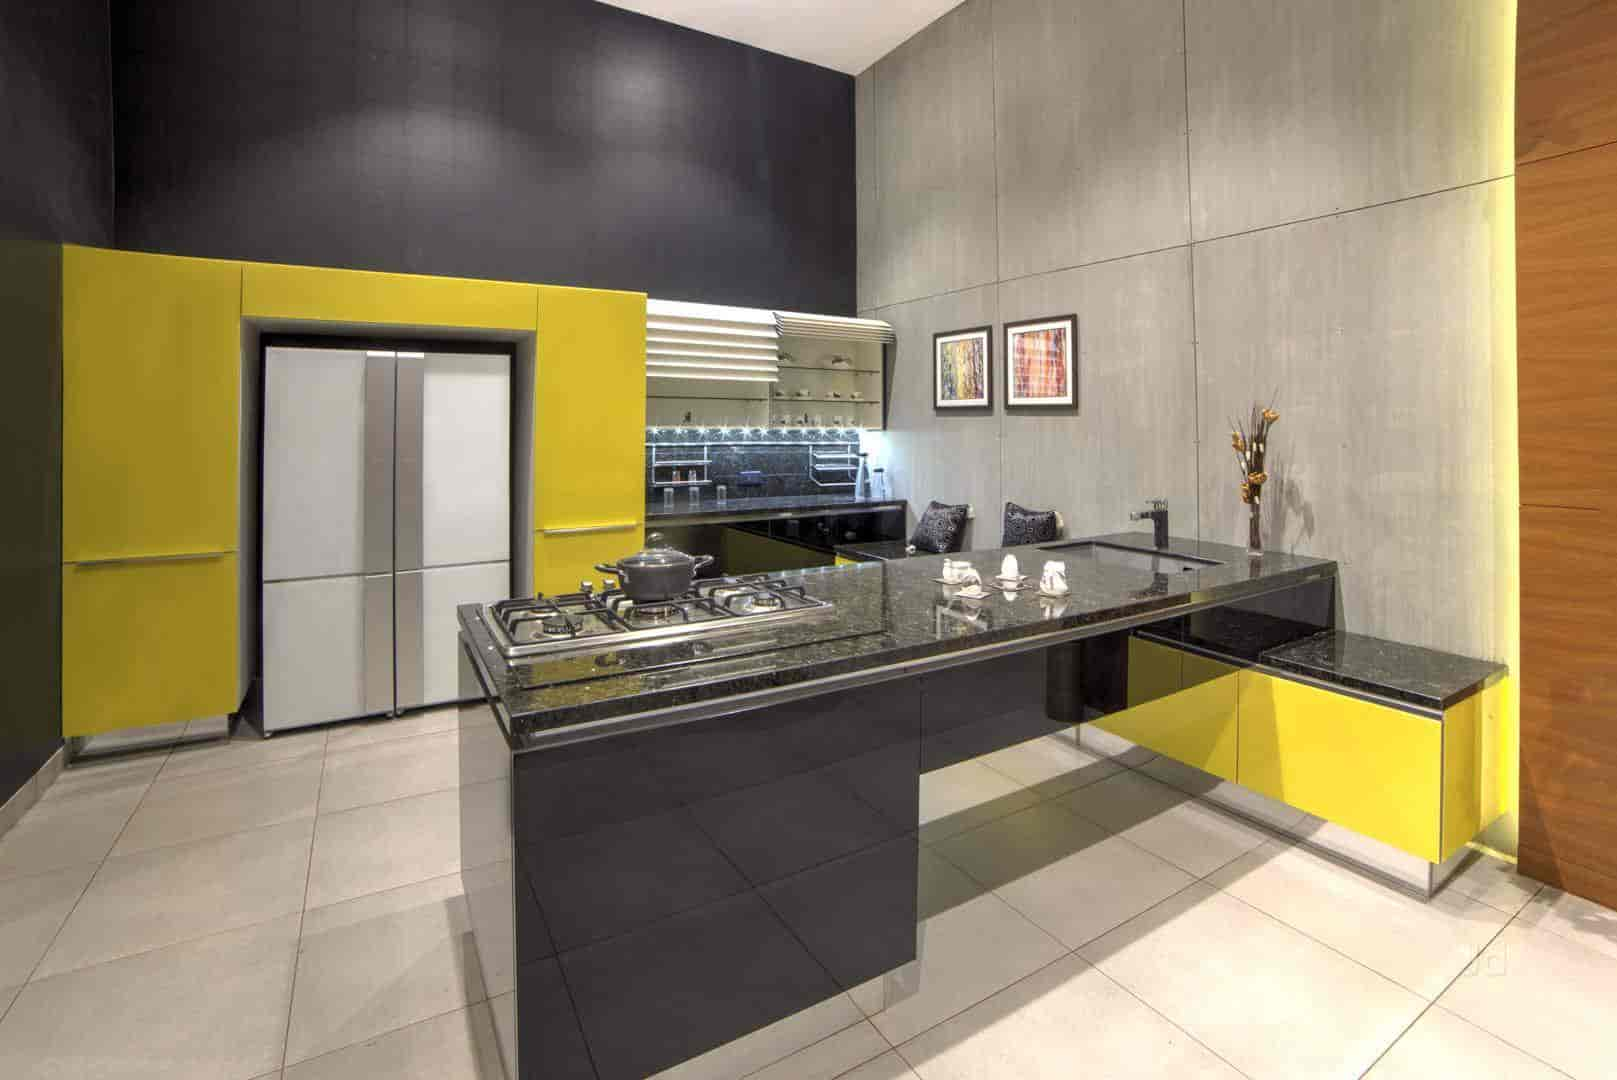 Arancia Kuchen, Erandwane - Kitchen Furniture Dealers In Pune